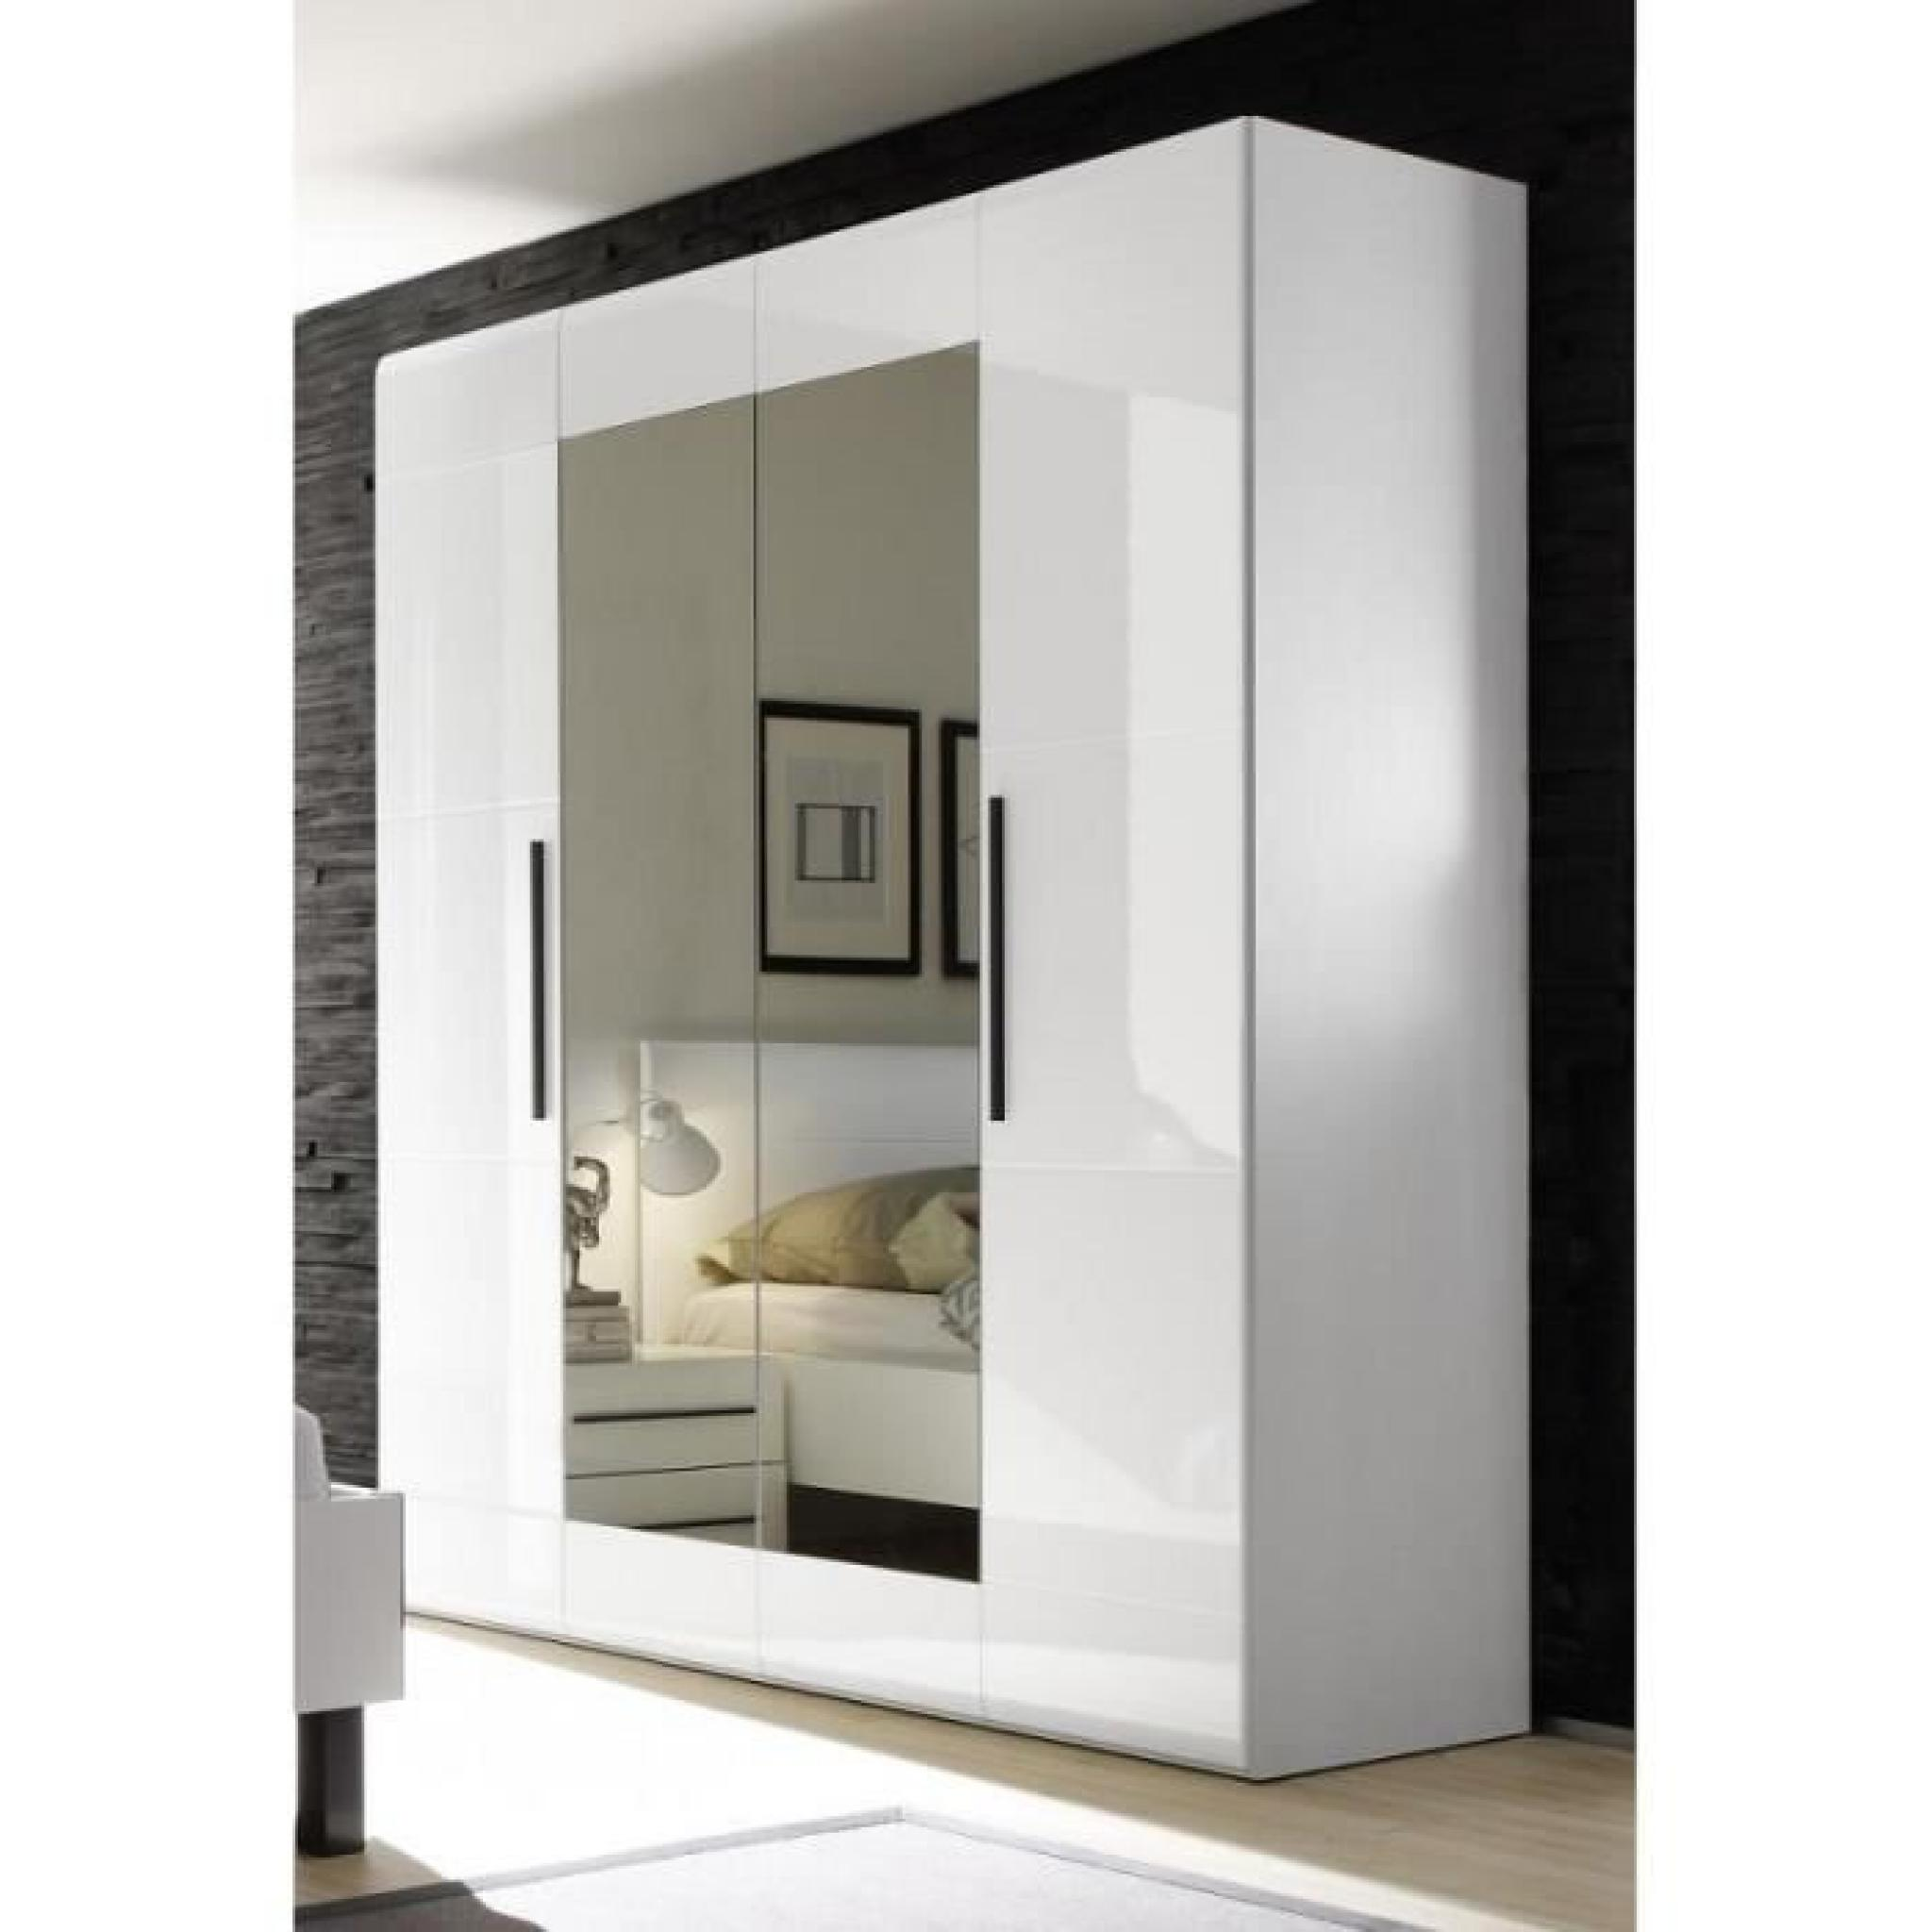 Chambre complete luxe mdf ref harmonya achat vente chambre complete pas che - Chambre complete pas cher ...